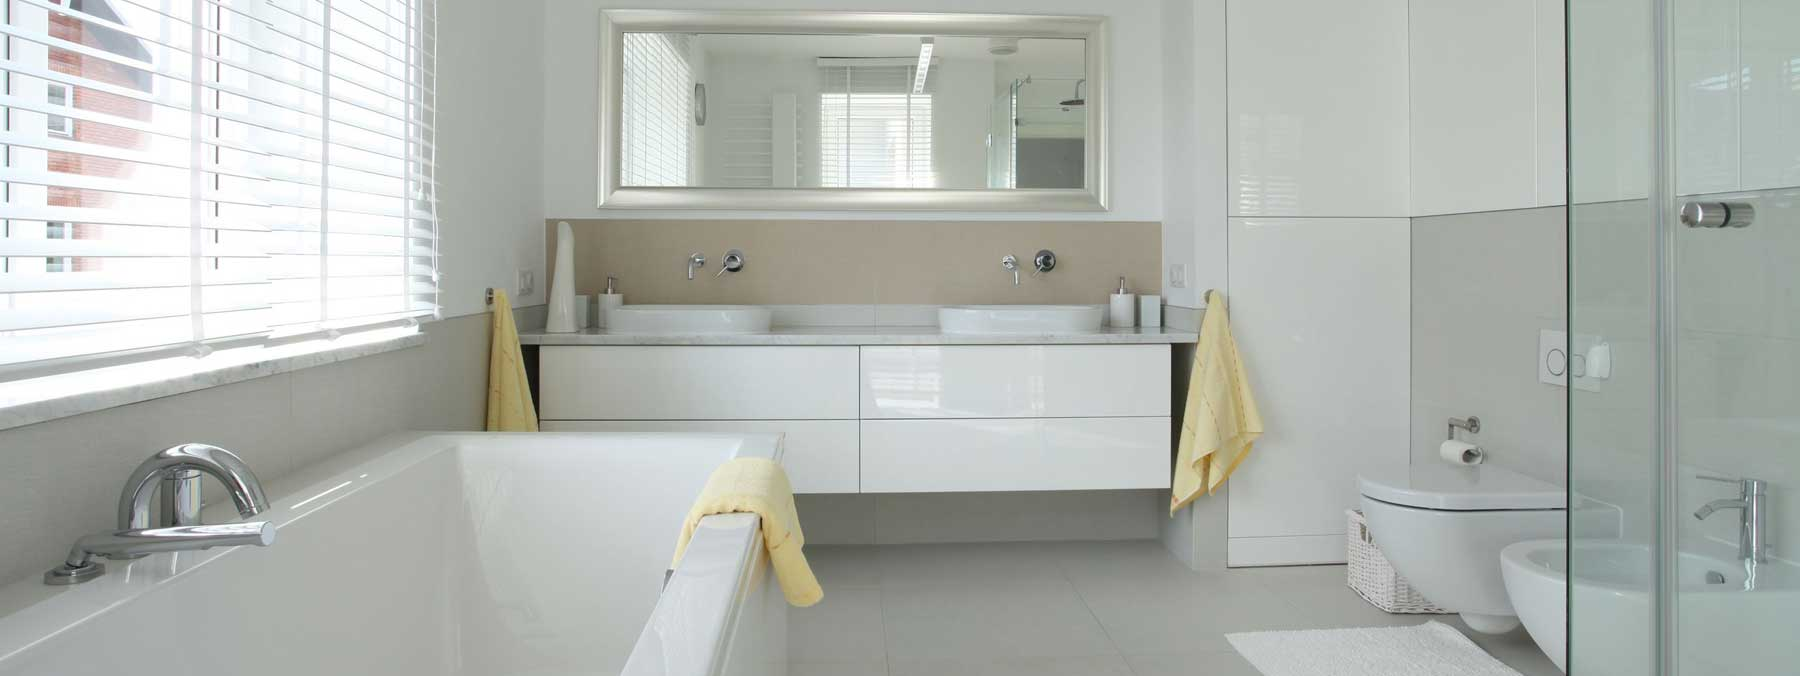 Renovate bathrooms - Stunning Castle Hill Bathroom Renovations